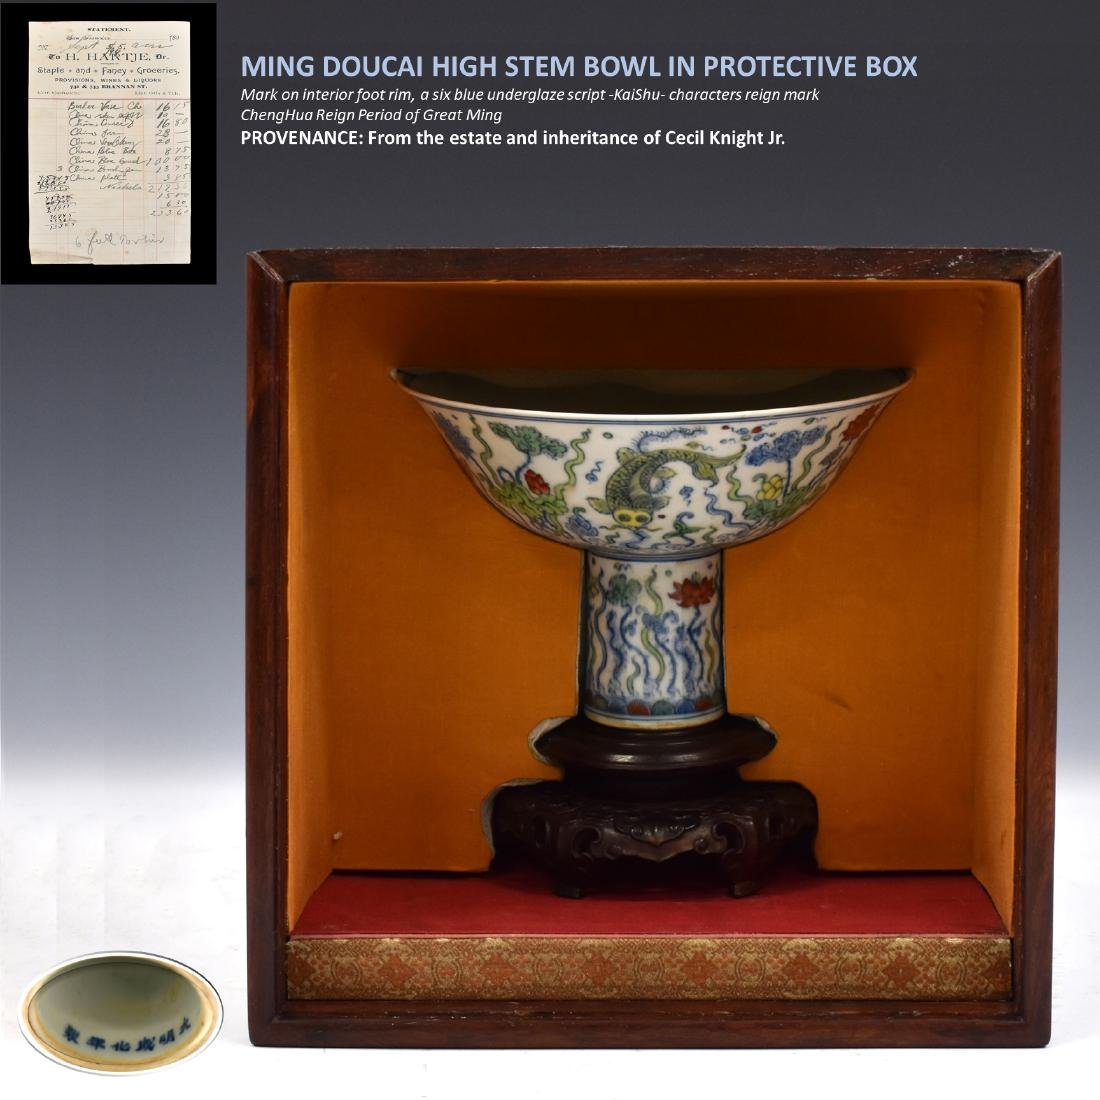 MING DOUCAI HIGH STEM BOWL IN PROTECTIVE BOX